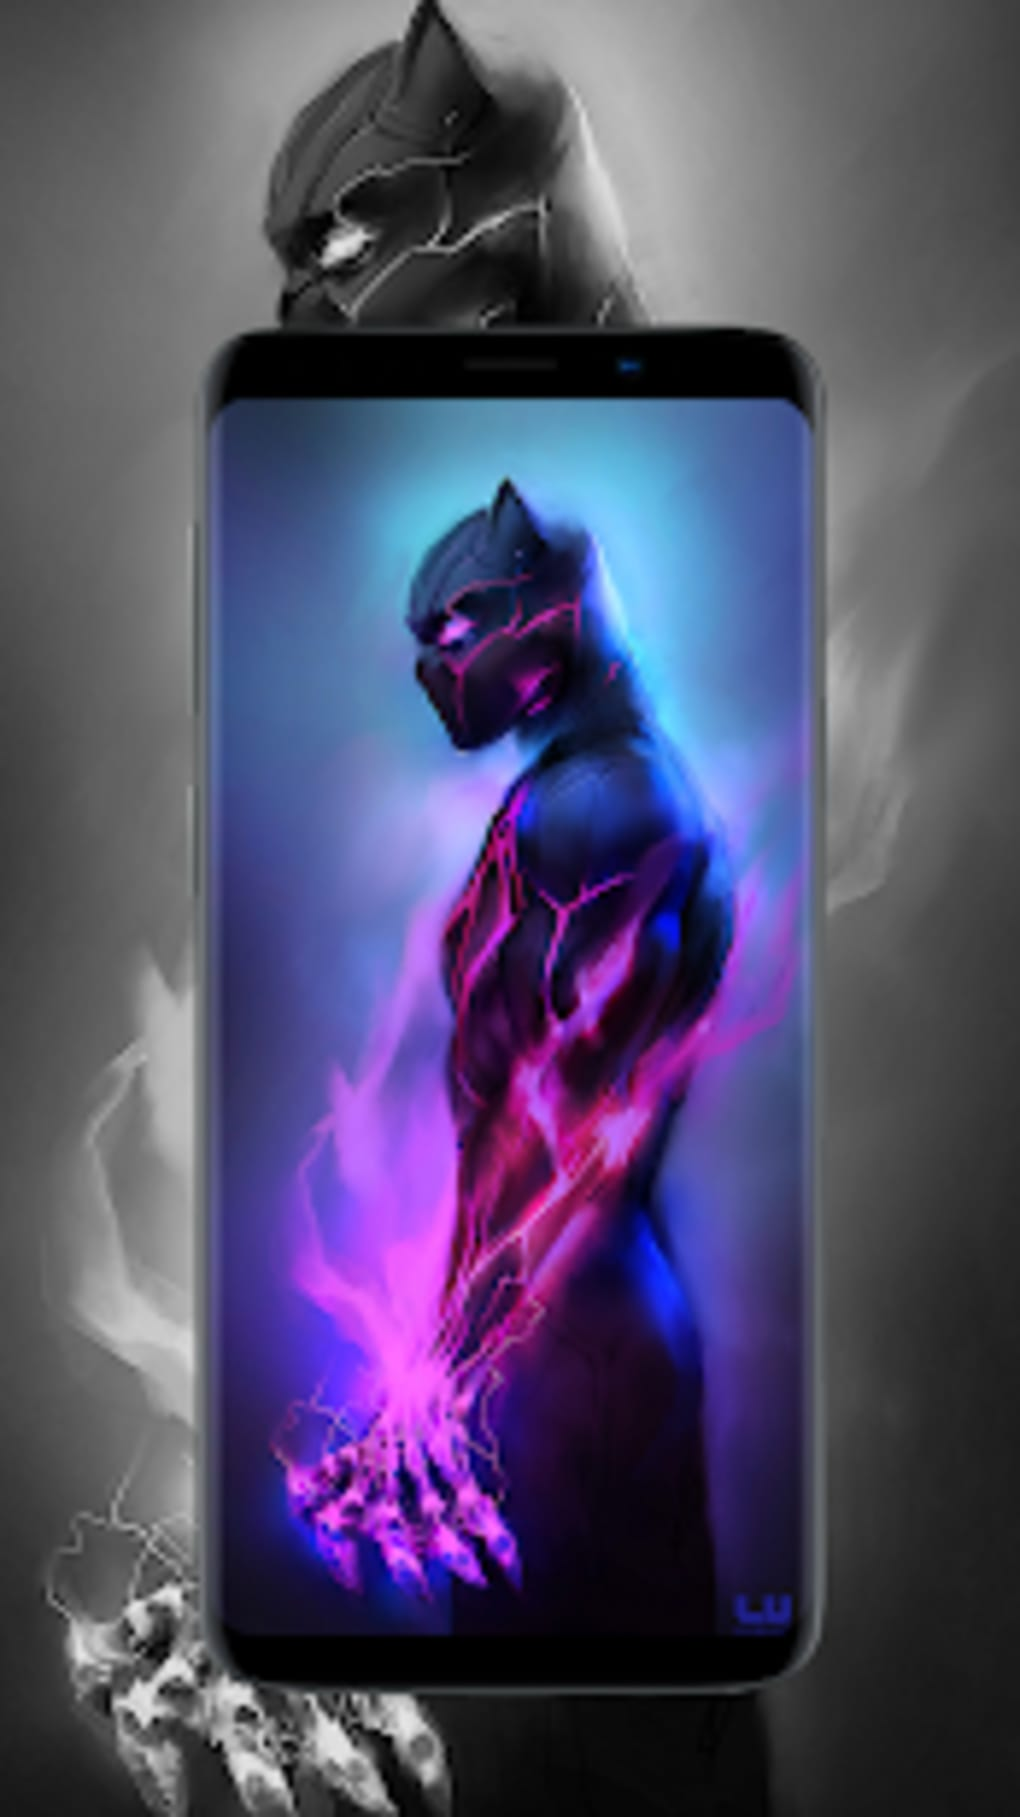 Black Panther Wallpaper 4k Posted By Samantha Sellers